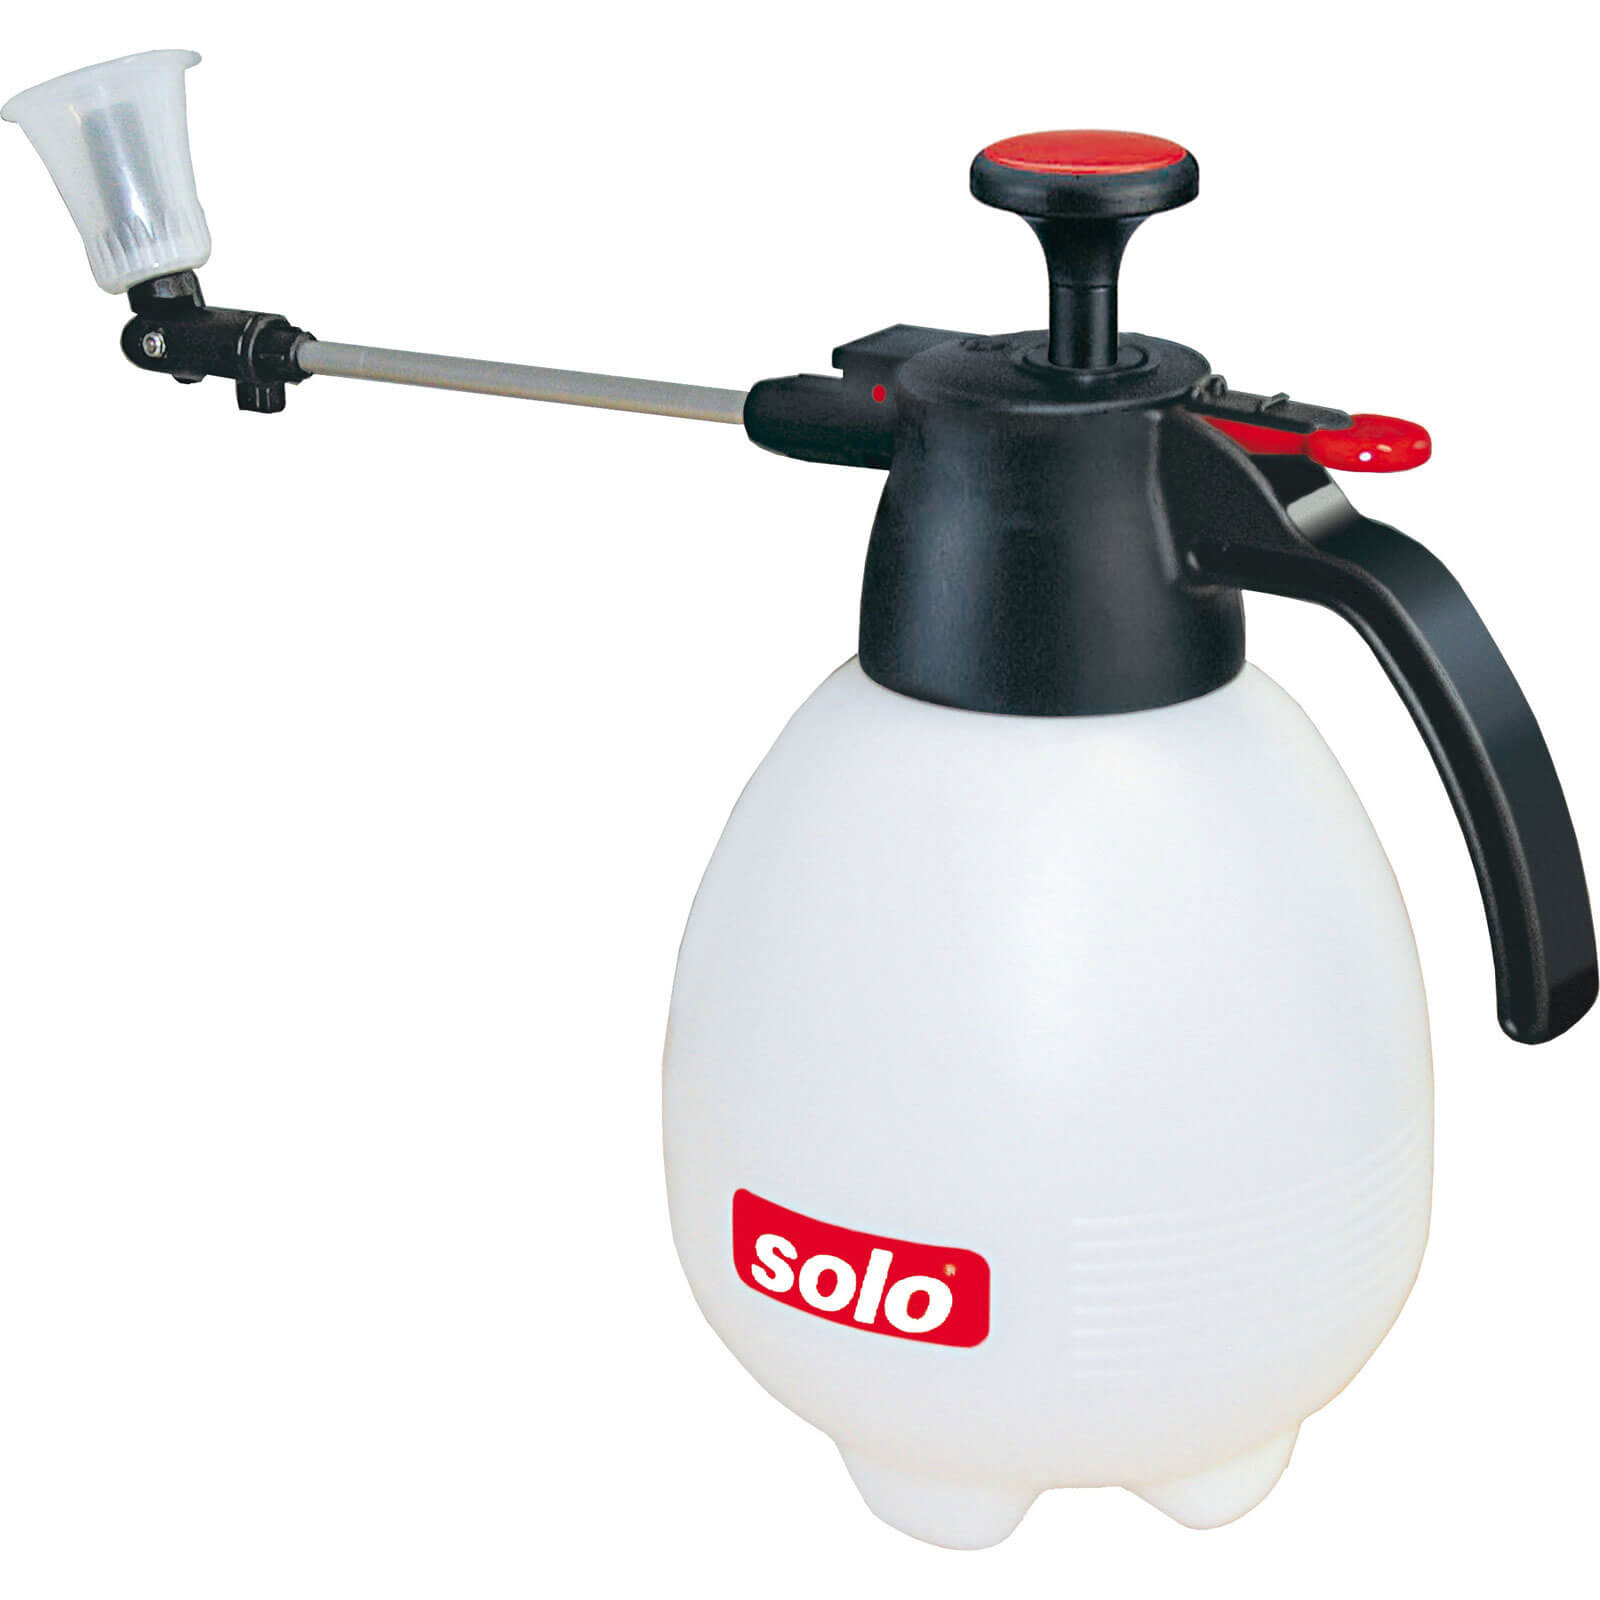 Image of Solo 401 COMFORT Chemical and Water Pressure Sprayer 1l